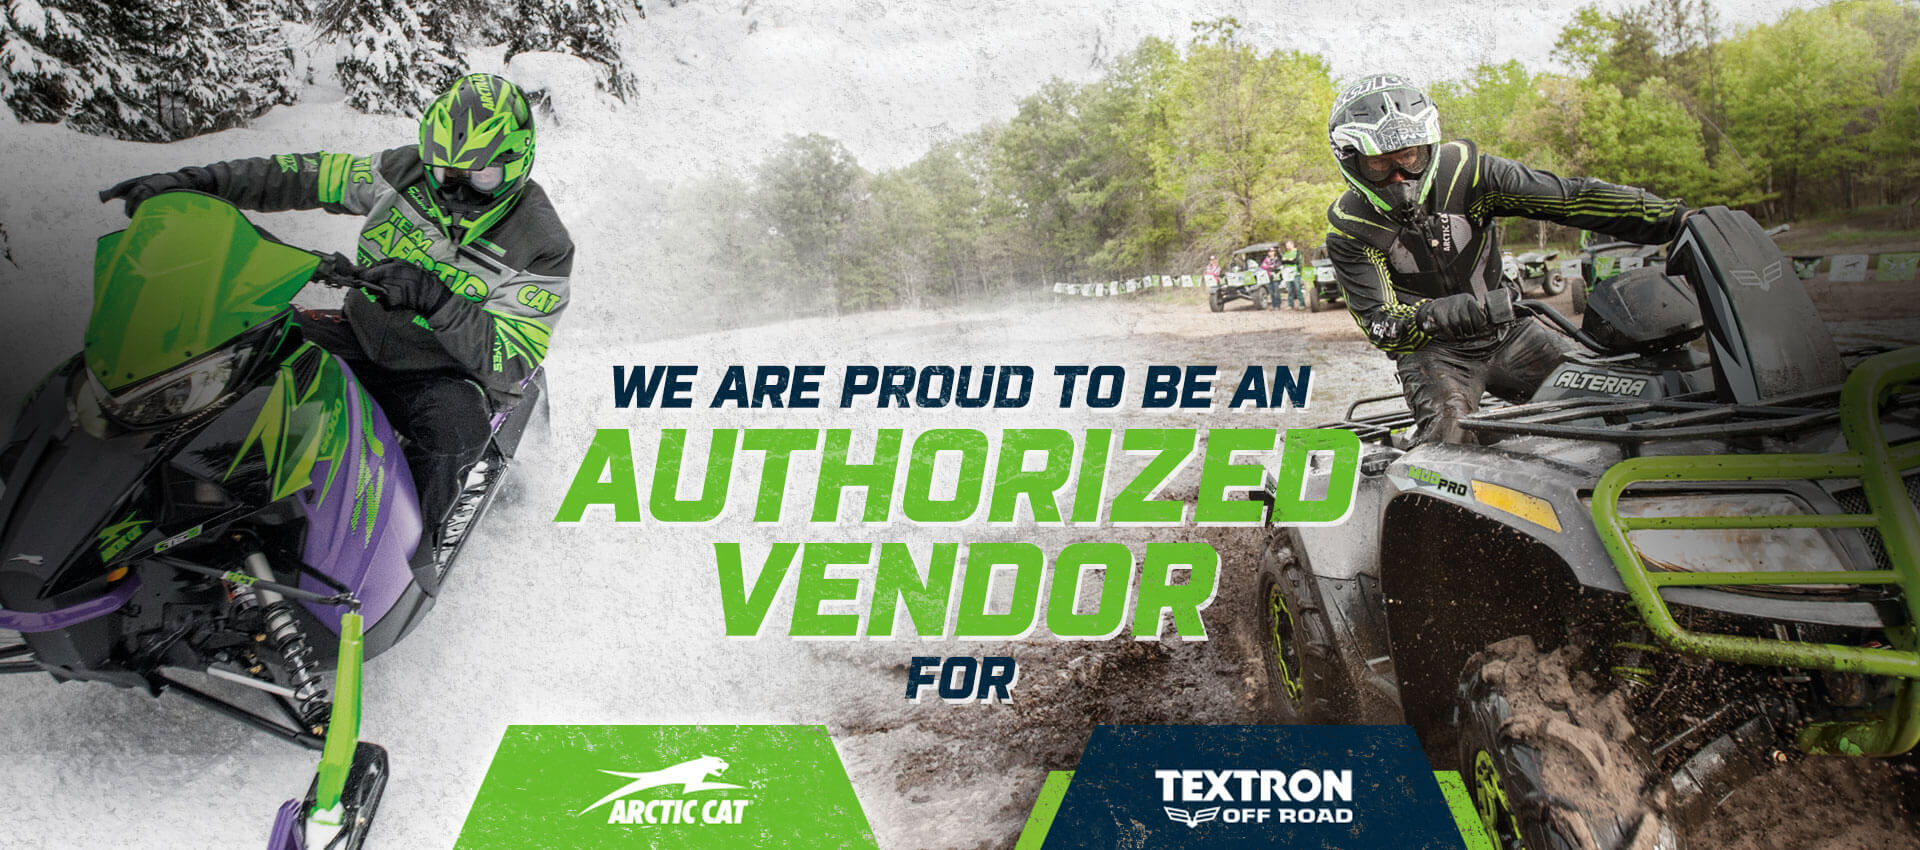 We are proud to be an Authorized Vendor for Arctic Cat and Textron Off Road